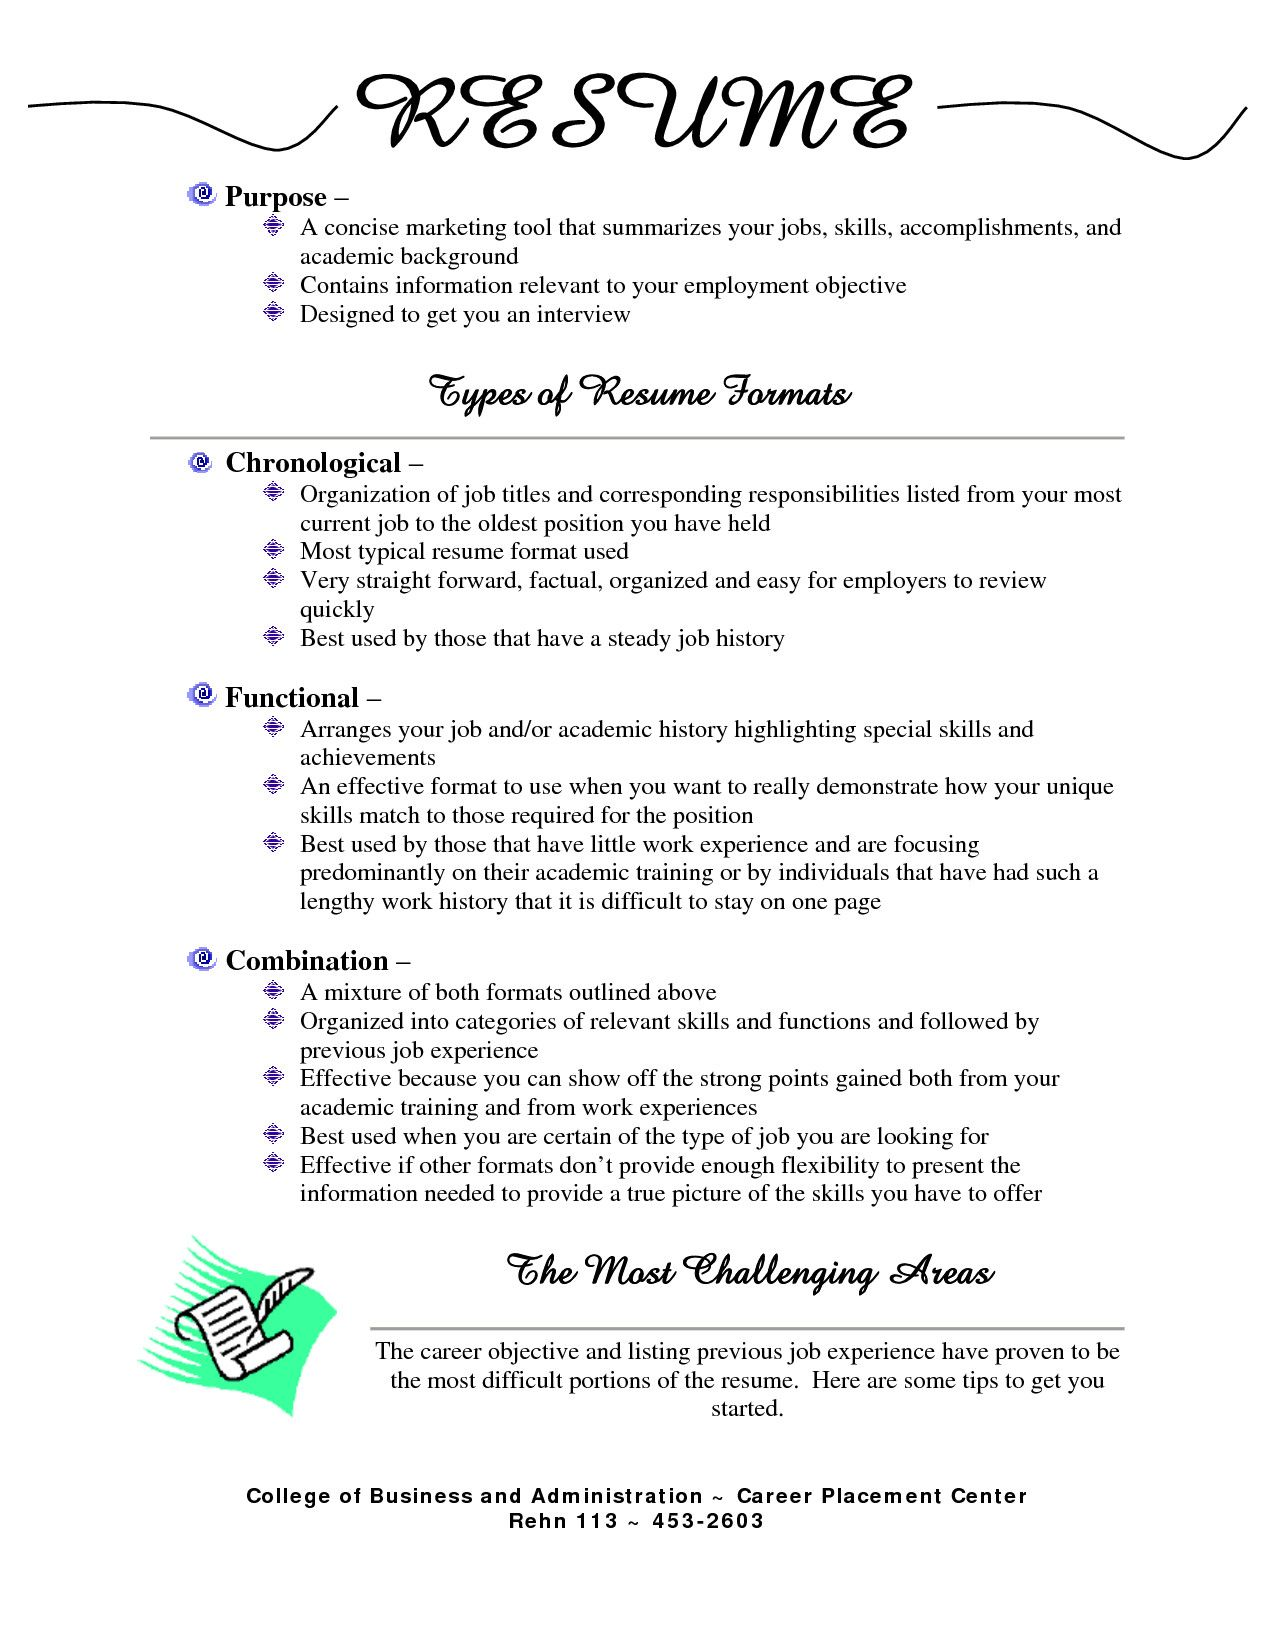 Different Types Of Resumes Stylish Different Resumes For Different Jobs Resume Ideas Of 26 Ex Job Resume Examples Resume Format Resume Examples